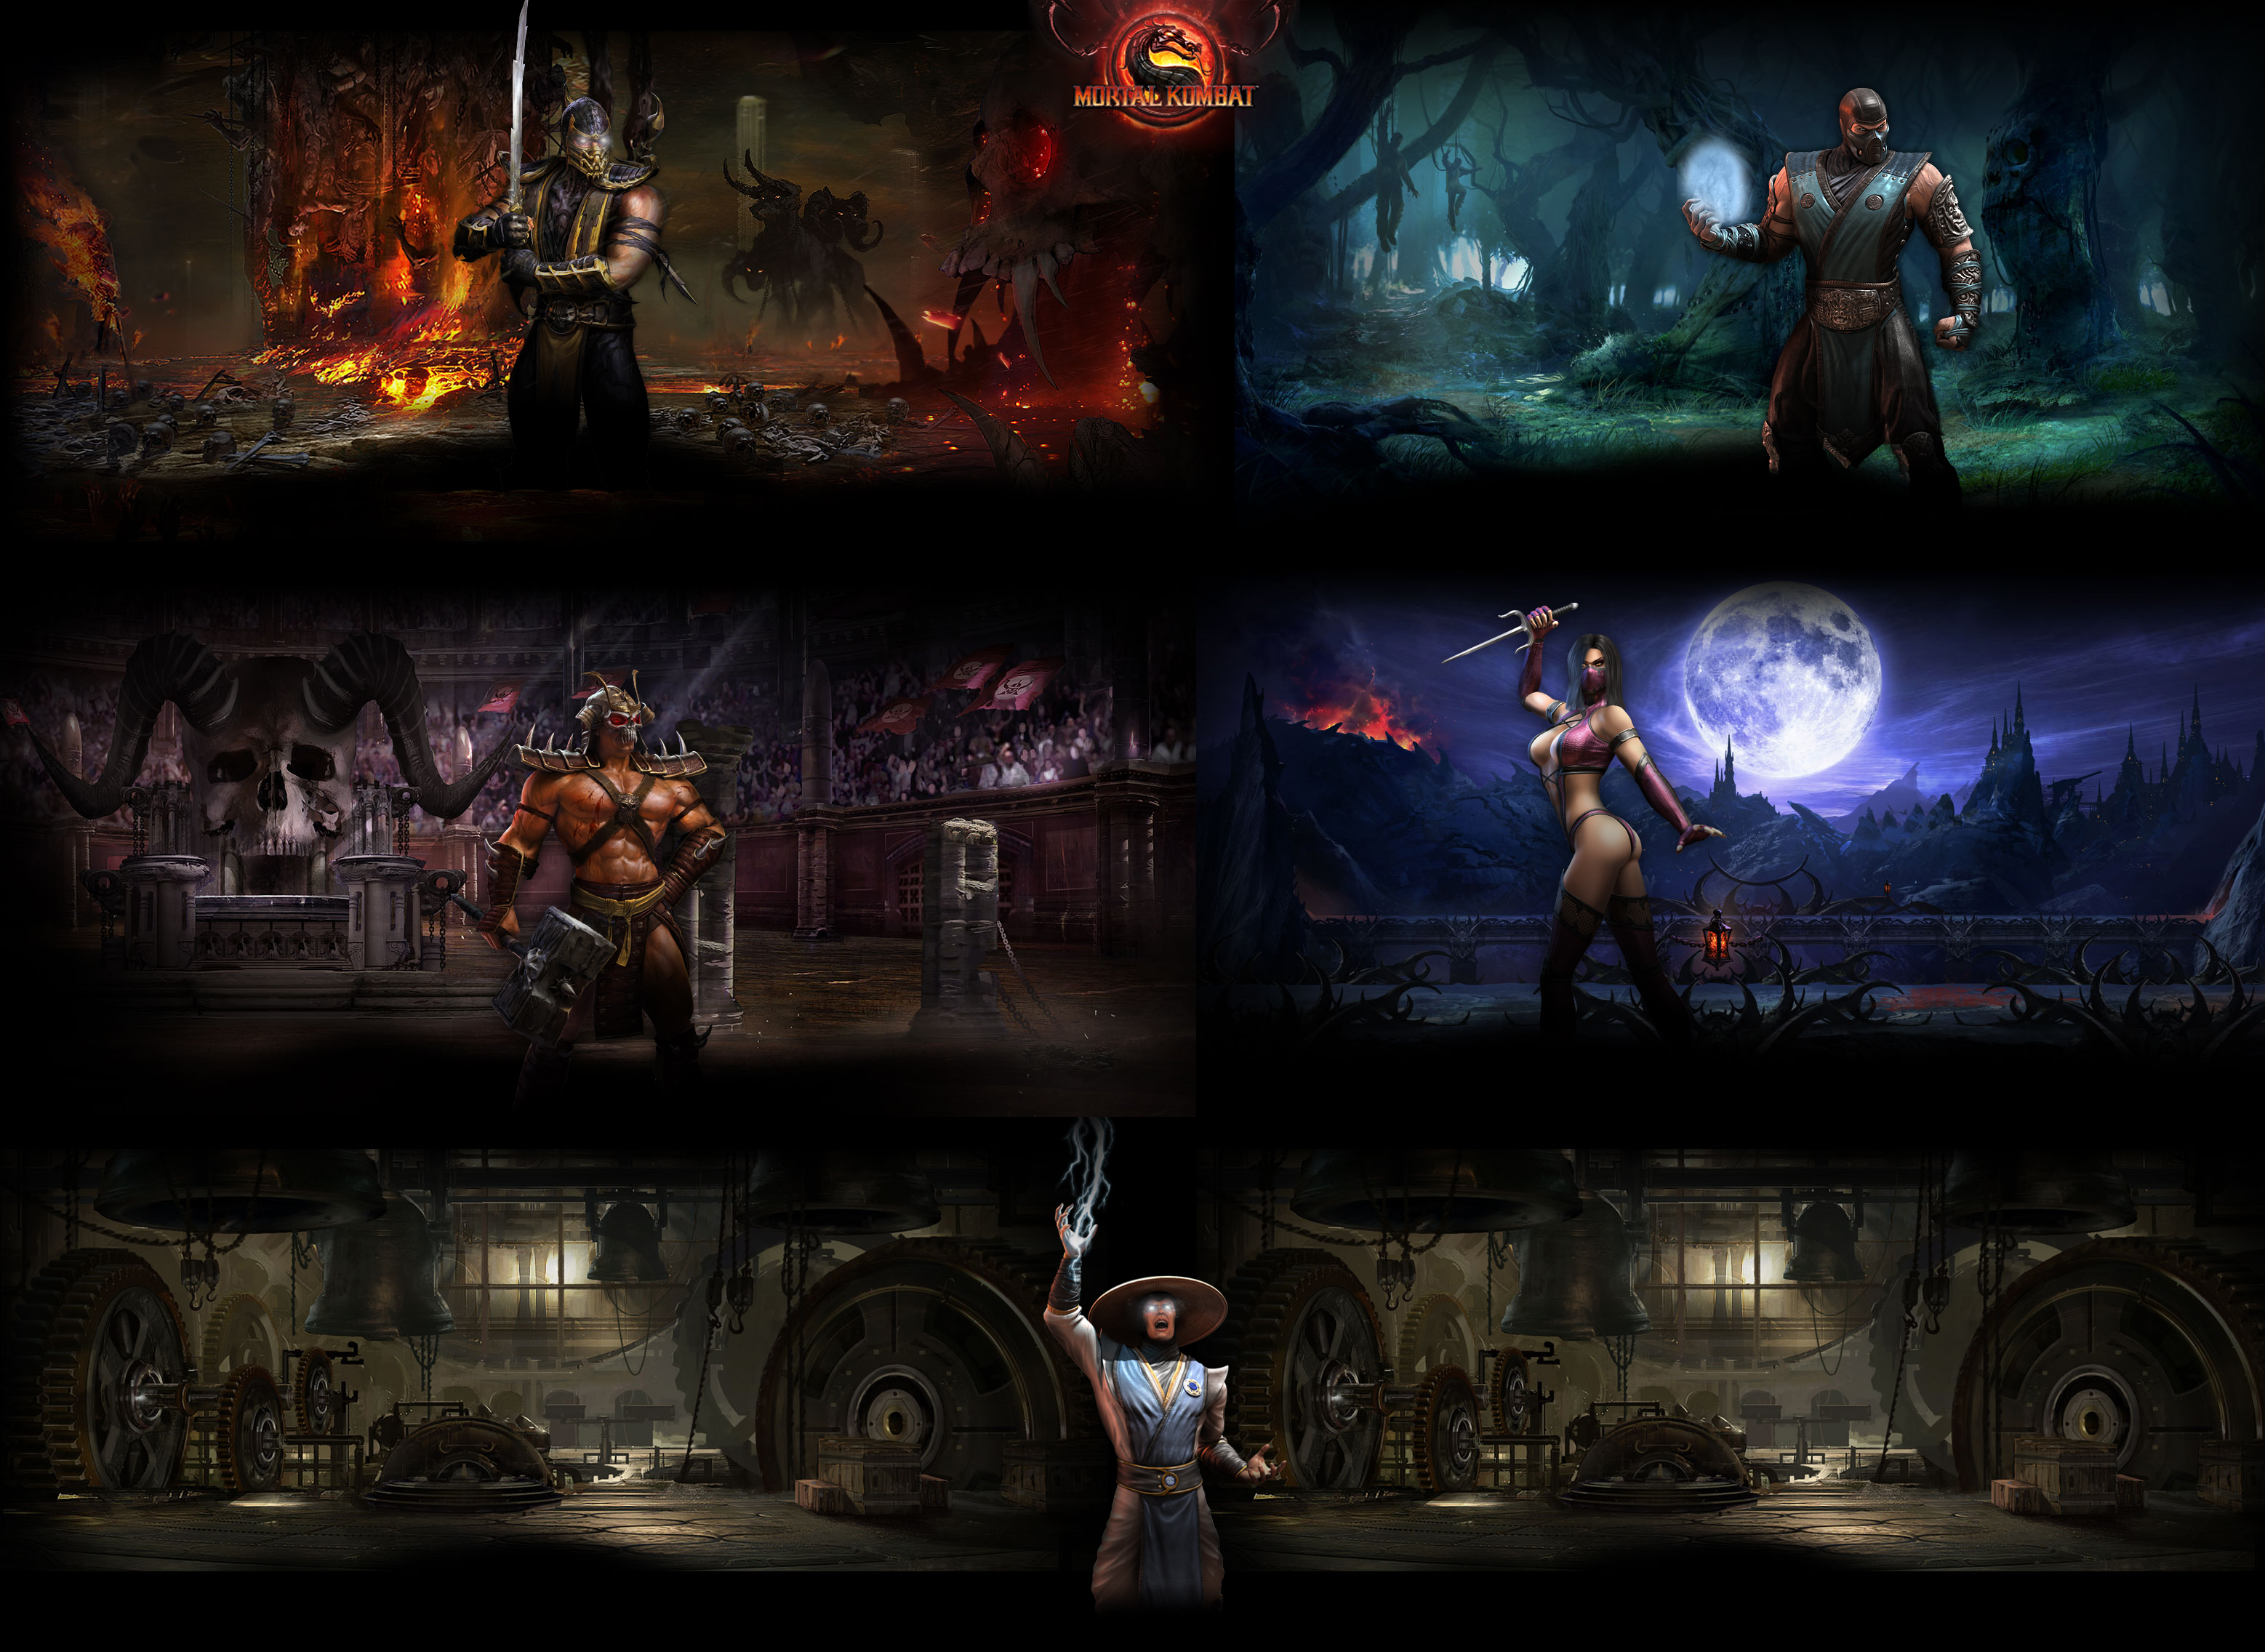 mortal kombat 9 wallpaper 2father12345 on deviantart